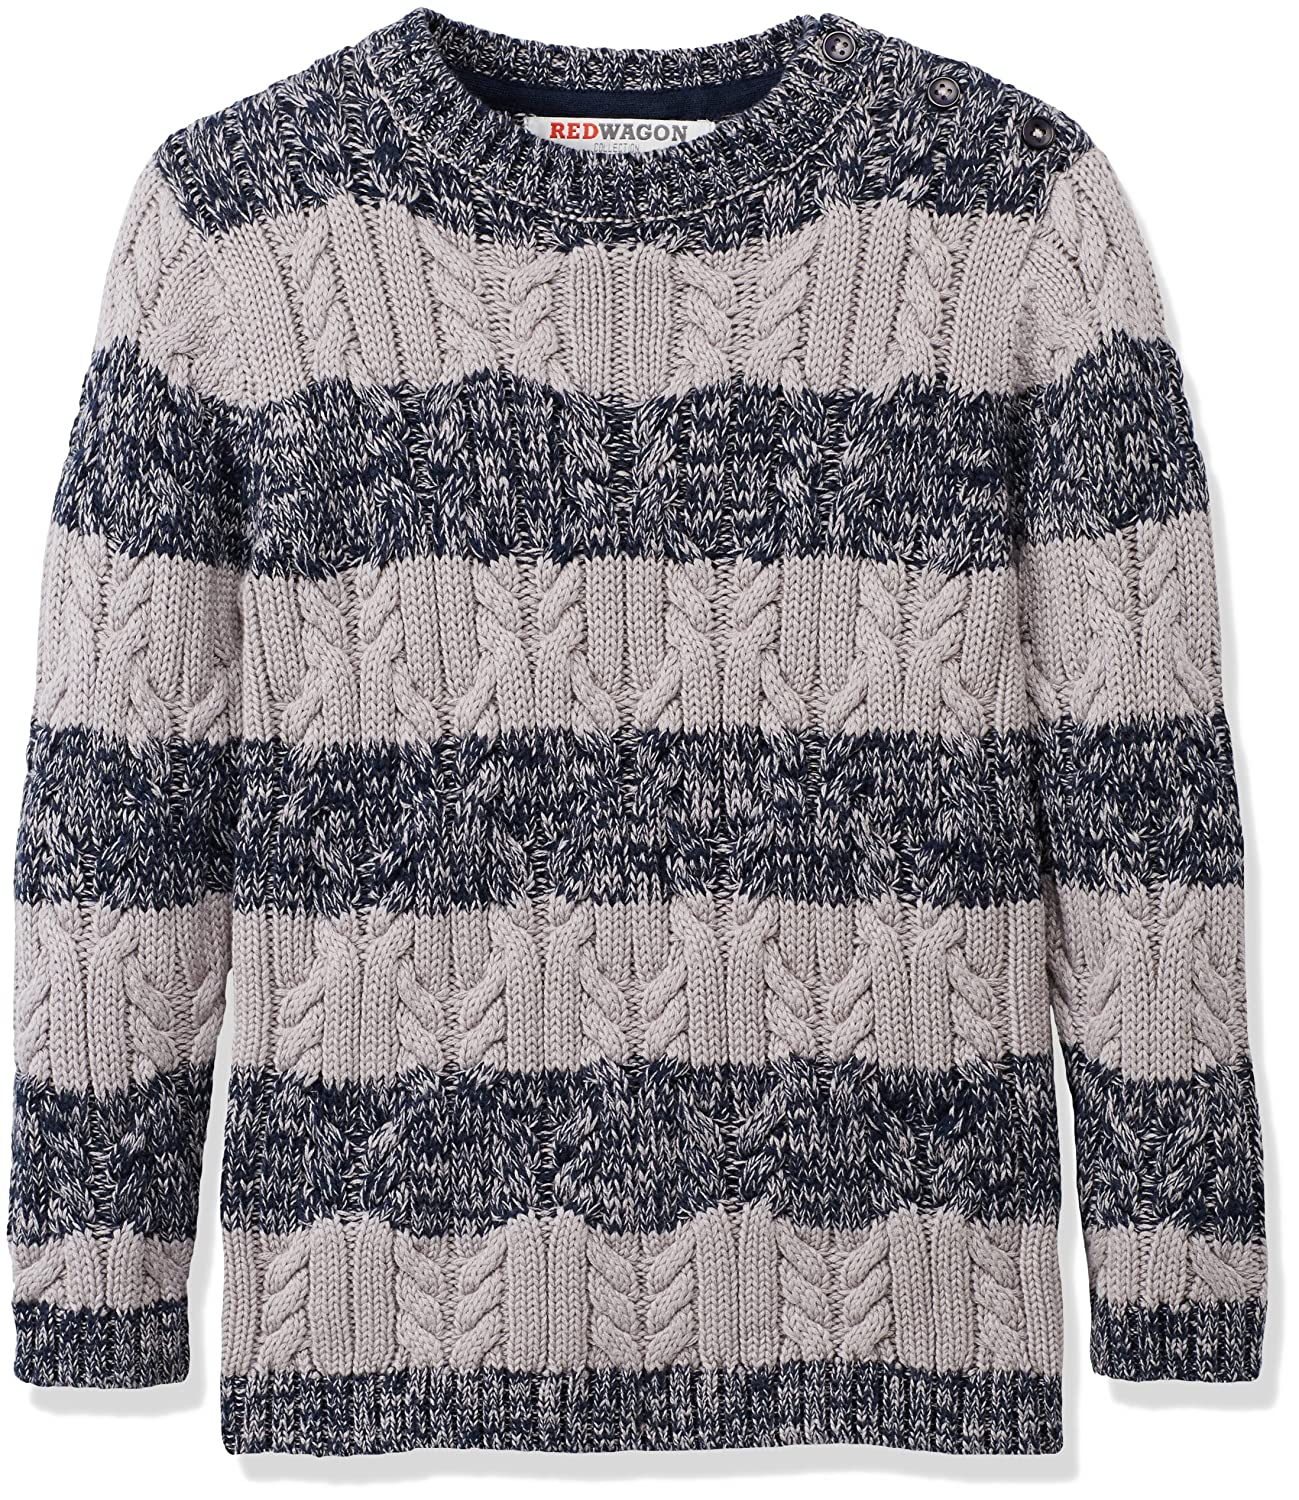 RED WAGON Boys Cable Knit Striped Jumper